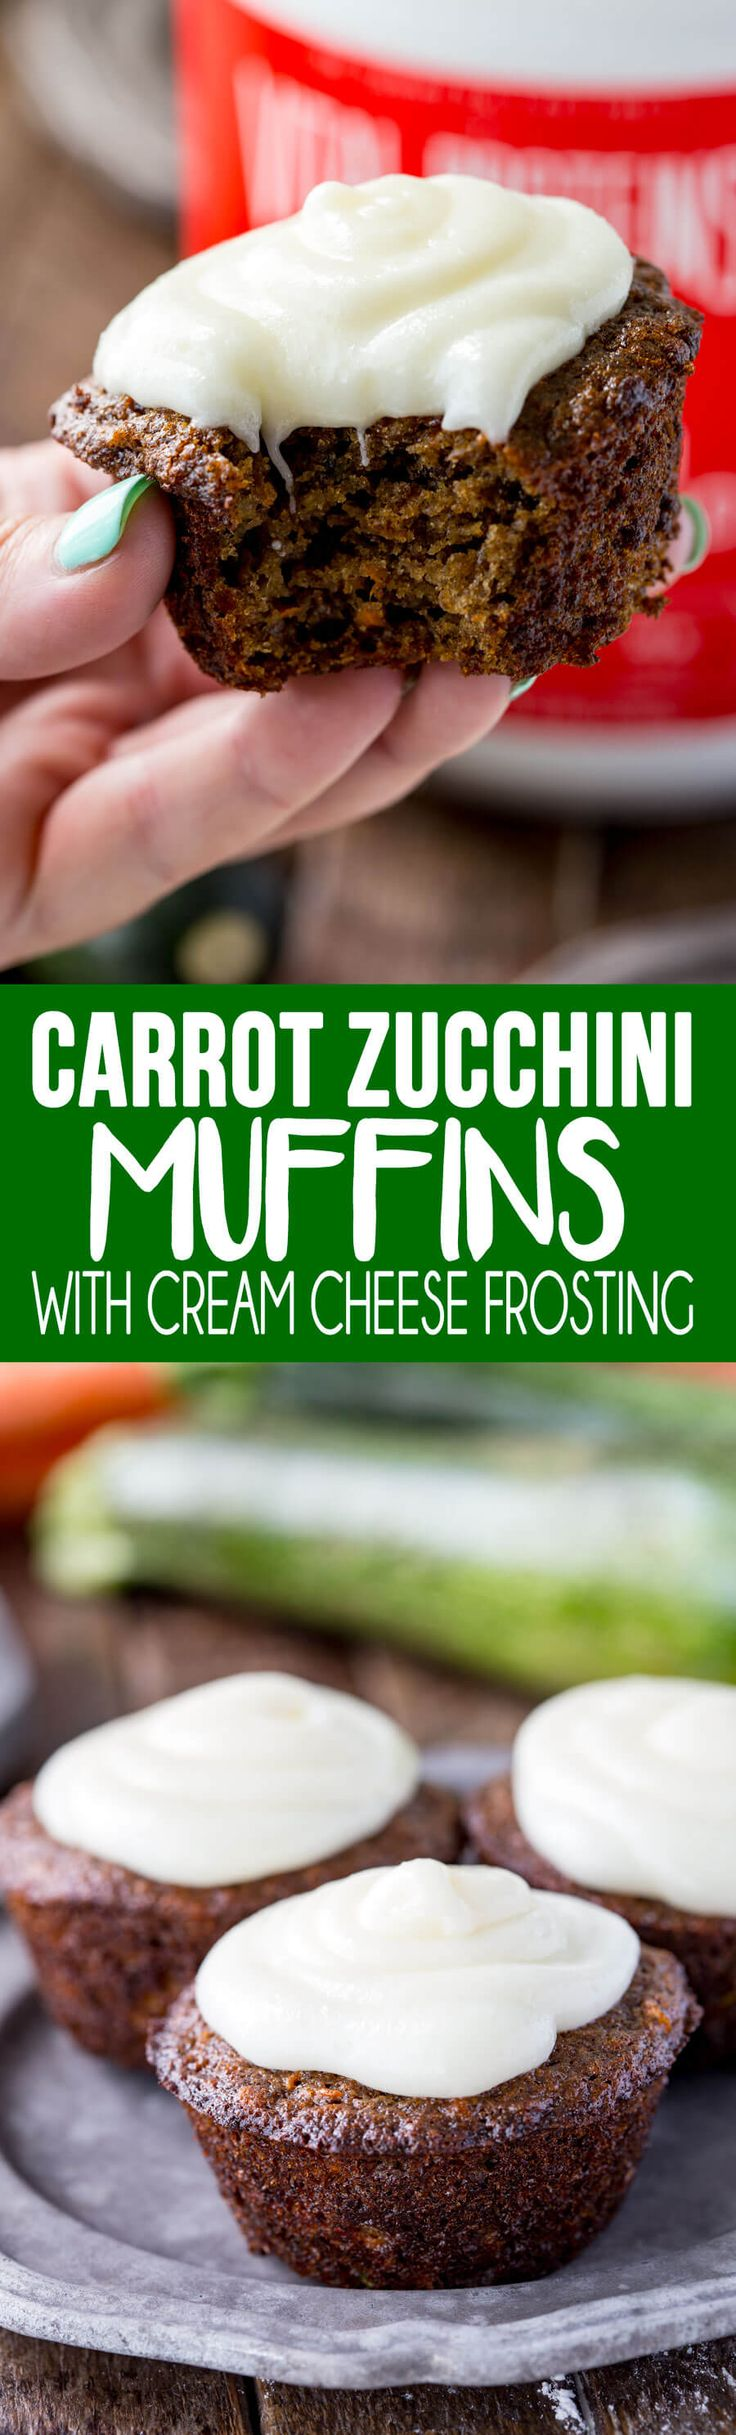 Carrot Zucchini Muffins with a cream cheese frosting that is optional, but makes it even that much more awesome #ad